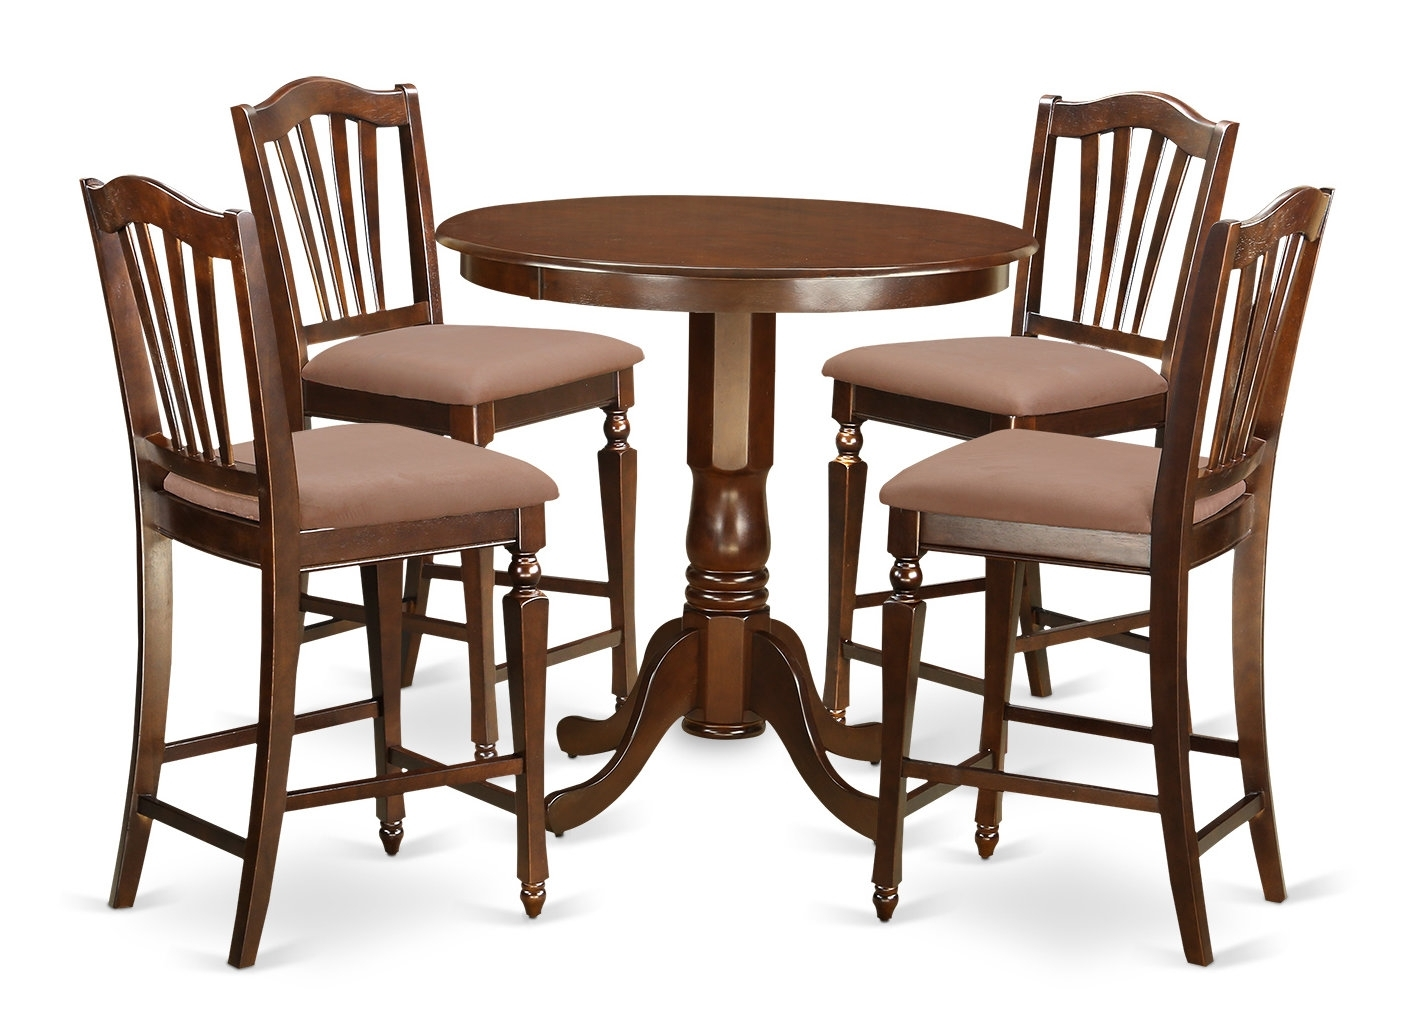 East West Jackson 5 Piece Counter Height Pub Table Set | Wayfair Within Recent Jaxon 6 Piece Rectangle Dining Sets With Bench & Wood Chairs (Image 7 of 20)